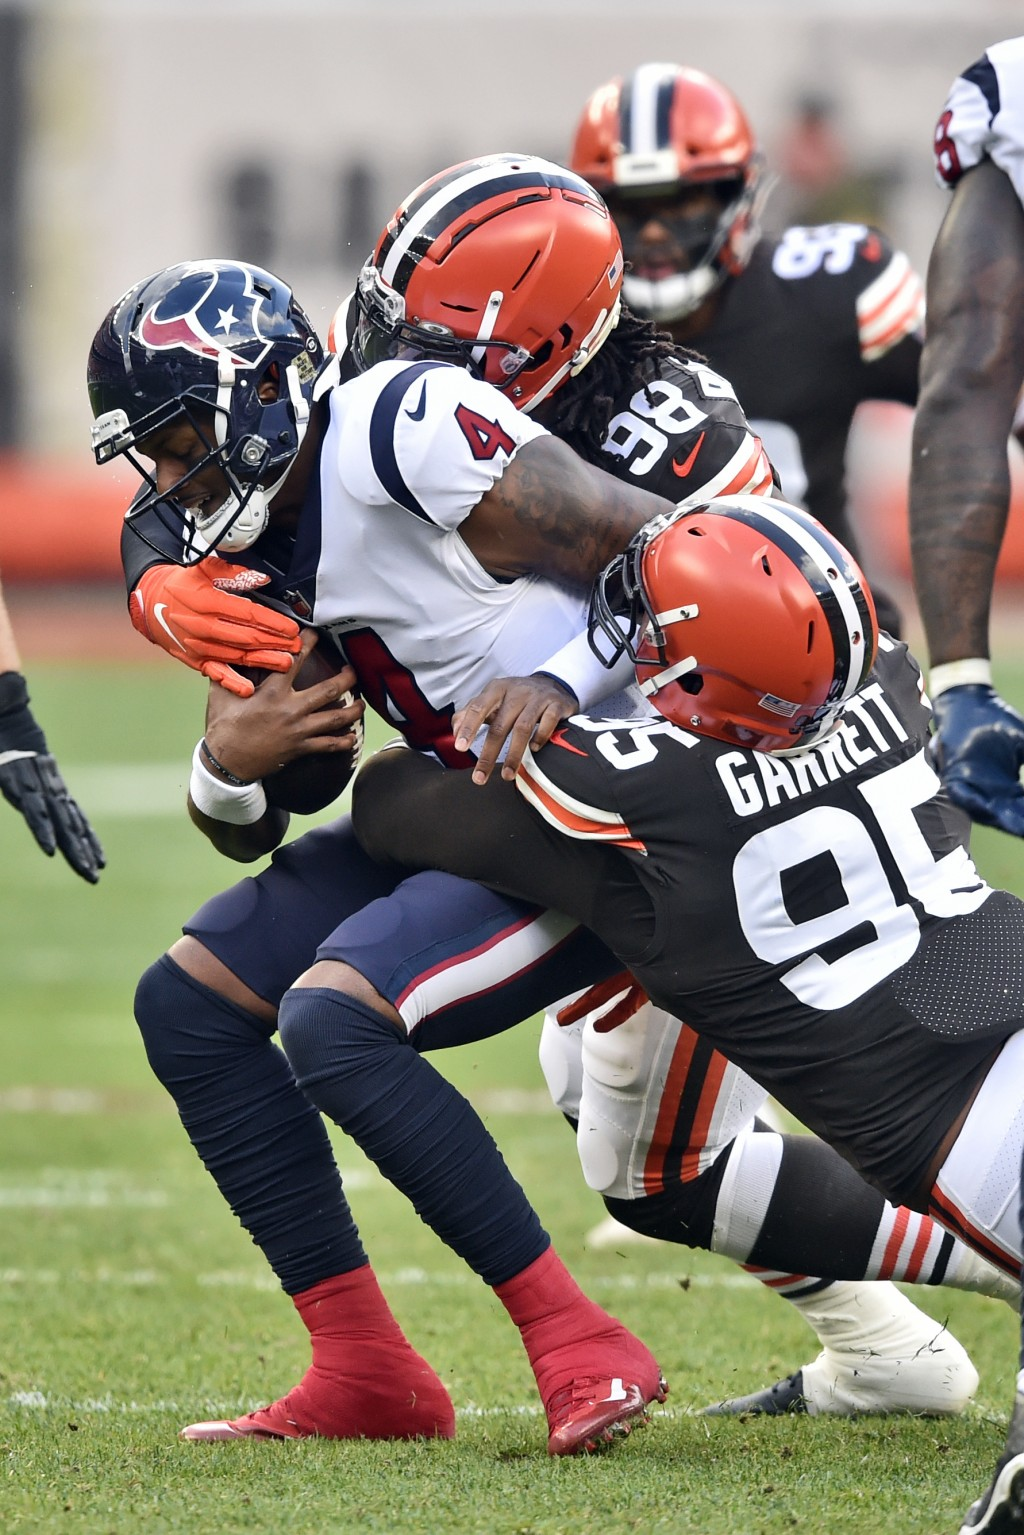 Cleveland Browns defensive end Myles Garrett (95) sacks Houston Texans quarterback Deshaun Watson (4) during the first half of an NFL football game, S...